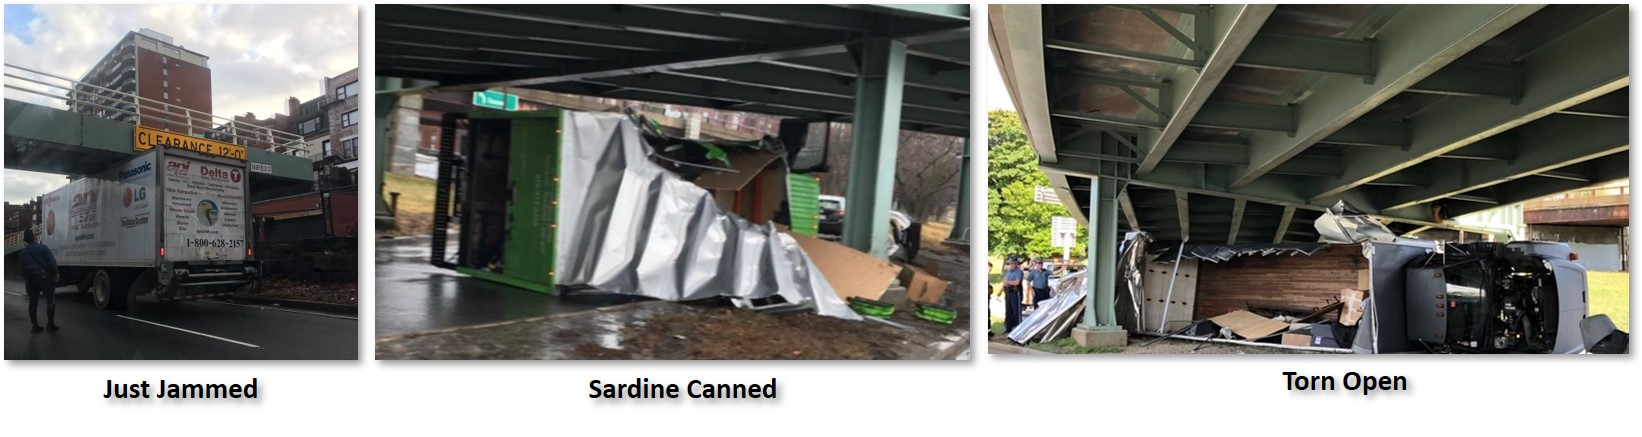 Storrow Drive, Getting Storrowed, low-clearance bridges, sardine-canned, jammed